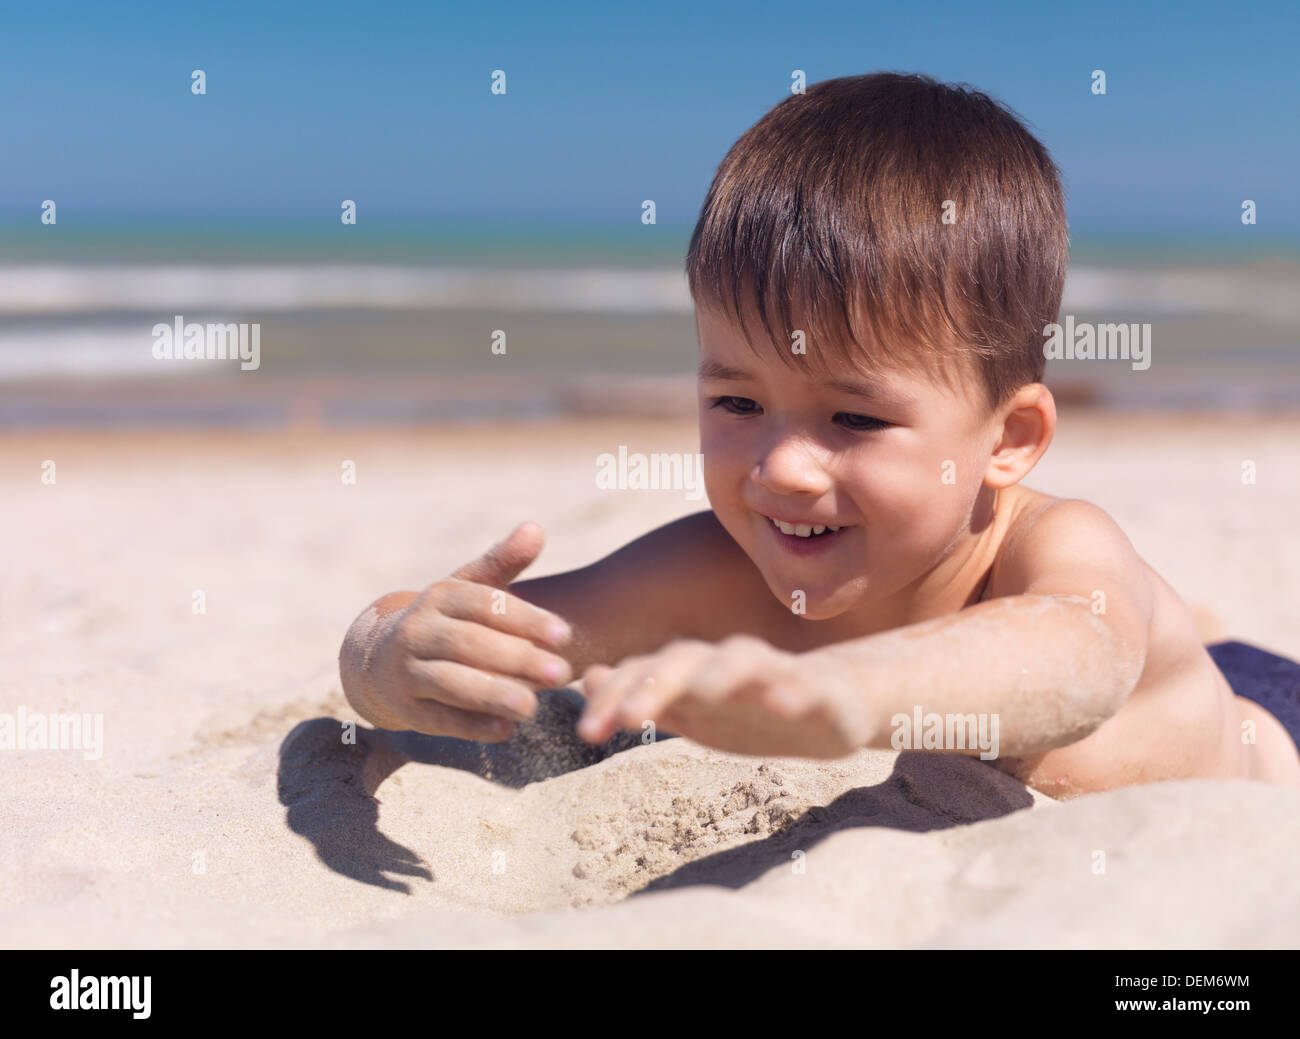 Happy smiling cute little boy playing with sand at the beach. Three year old child. Lake Huron, Ontario, Canada. - Stock Image